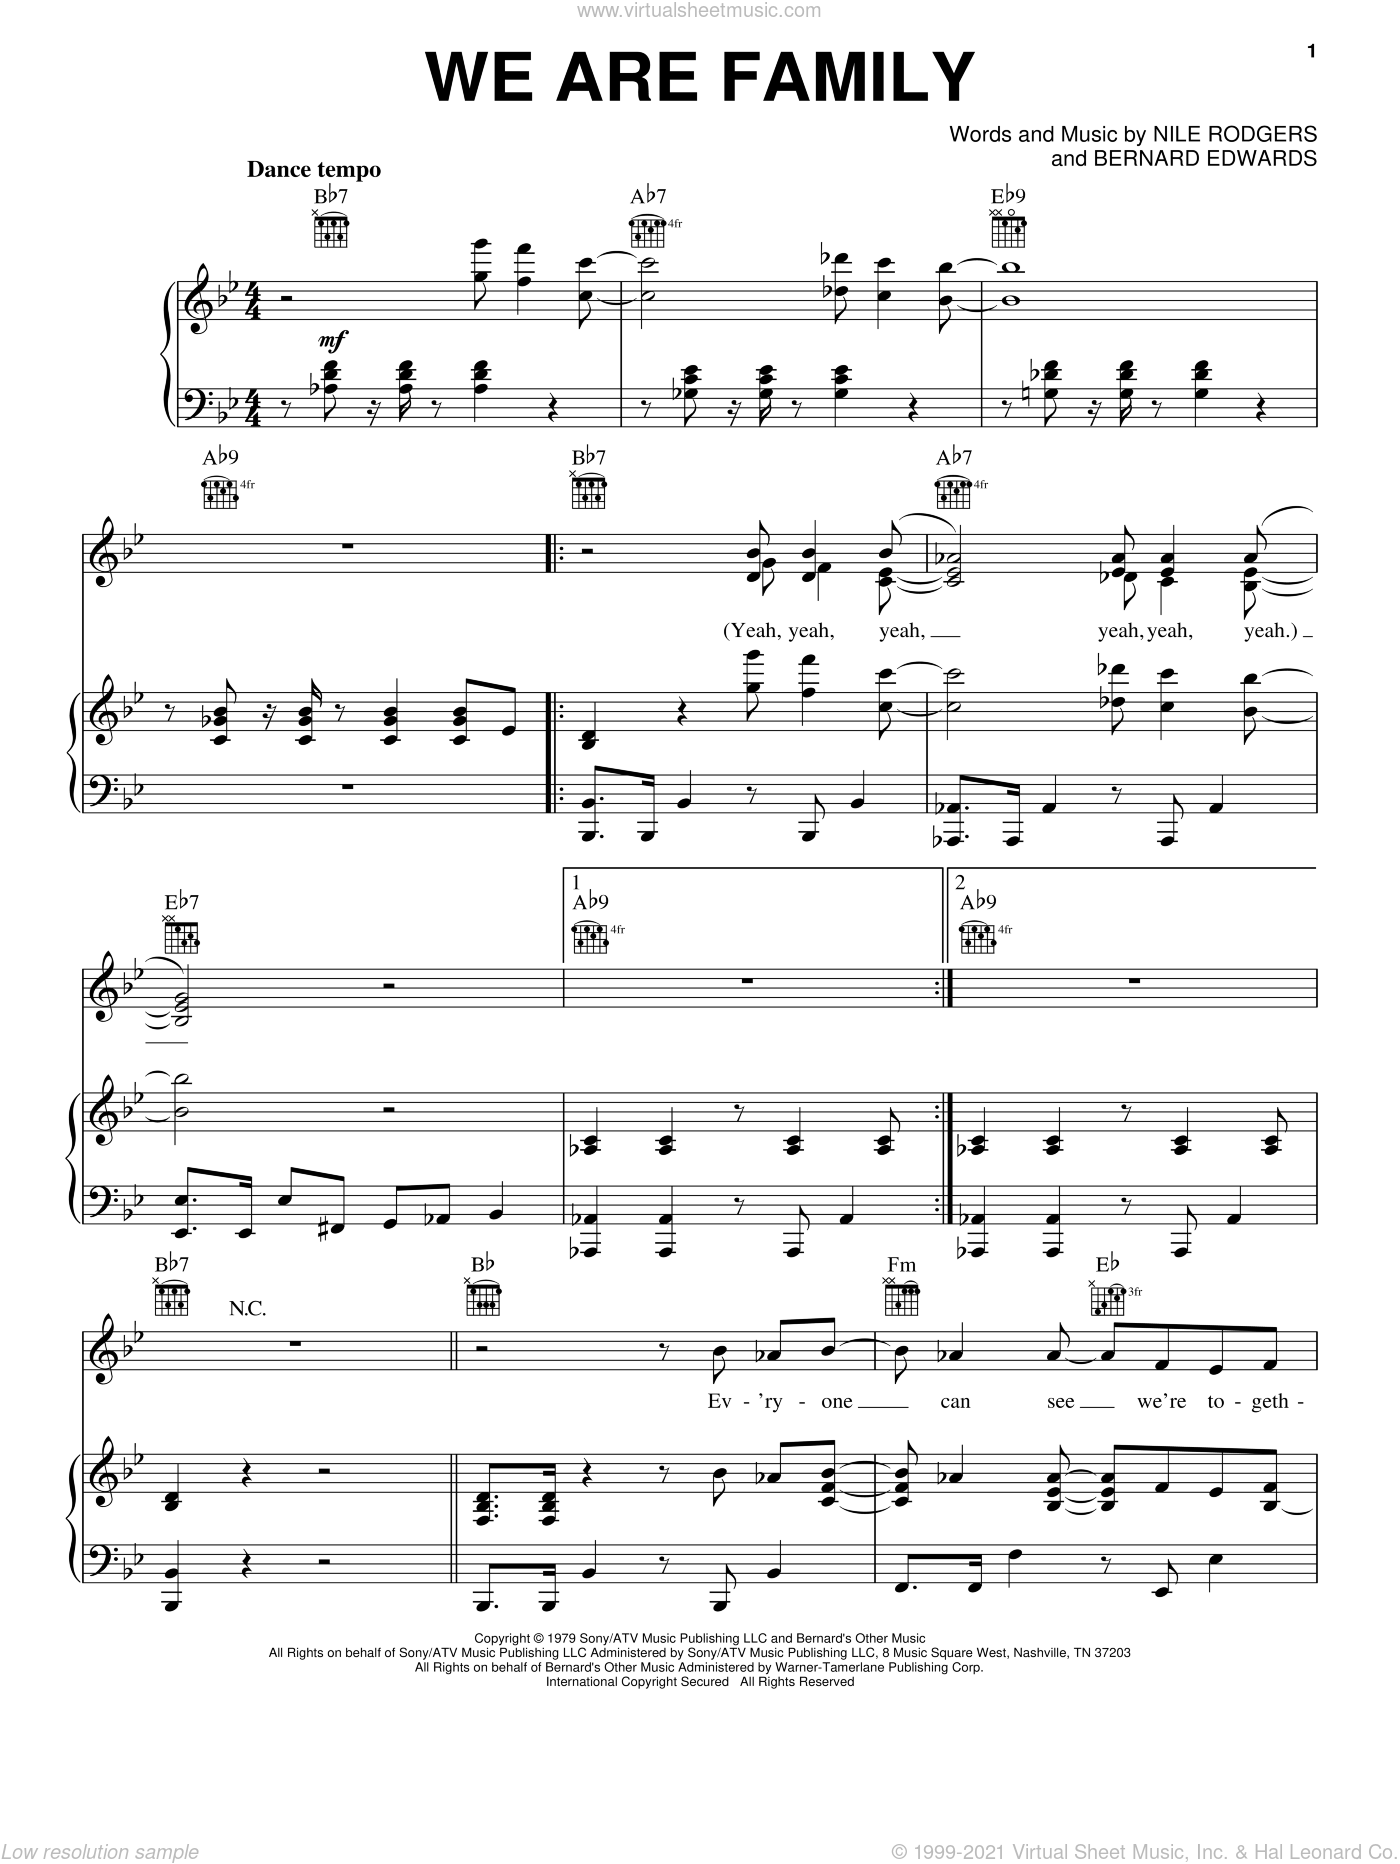 We Are Family sheet music for voice, piano or guitar by Nile Rodgers, Sister Sledge and Bernard Edwards. Score Image Preview.